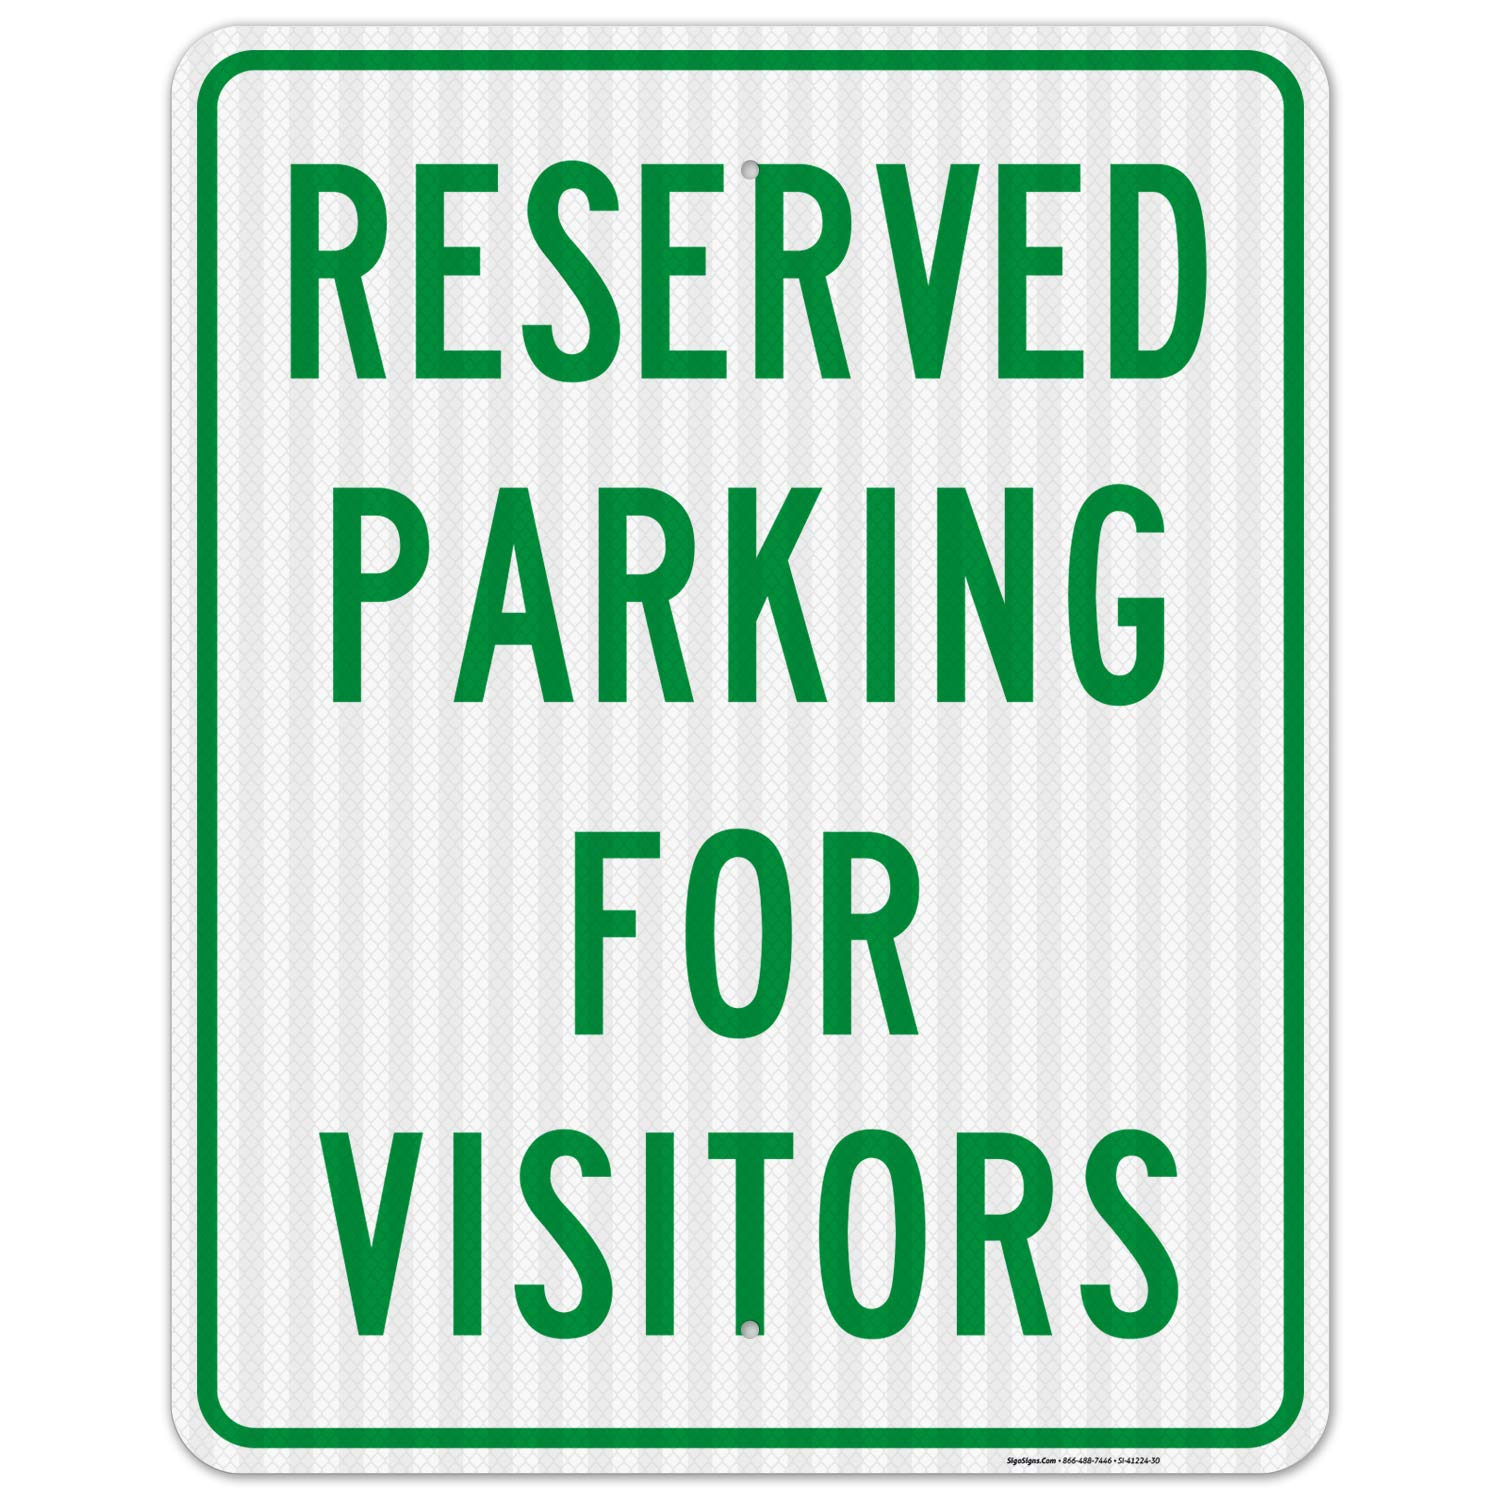 Reserved El Paso Mall Parking for Visitors Financial sales sale Sign 24x30 Reflect 3M EGP Inches